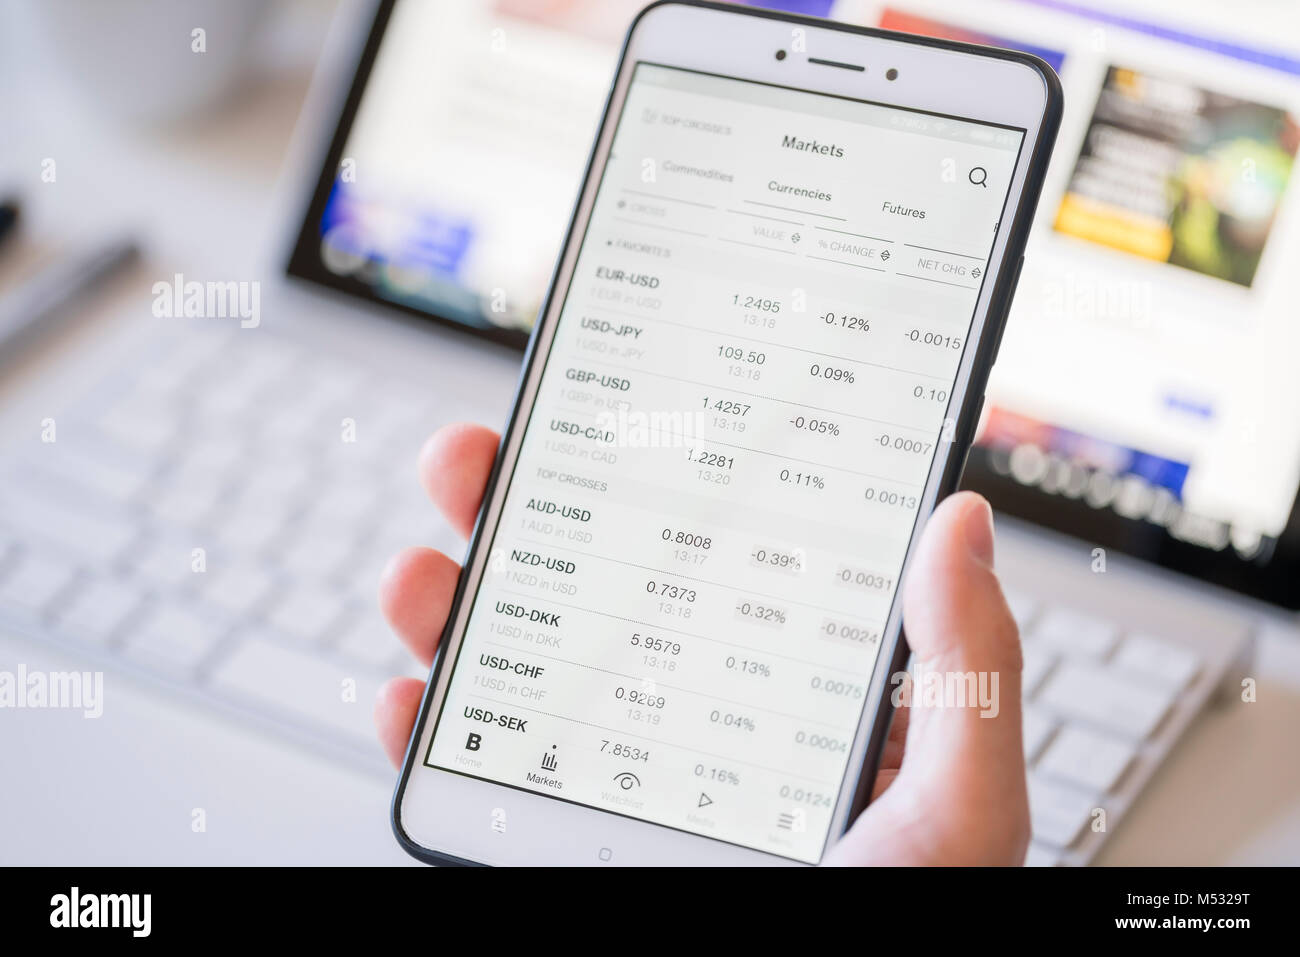 Checking currency exchange rates on a smartphone - Stock Image